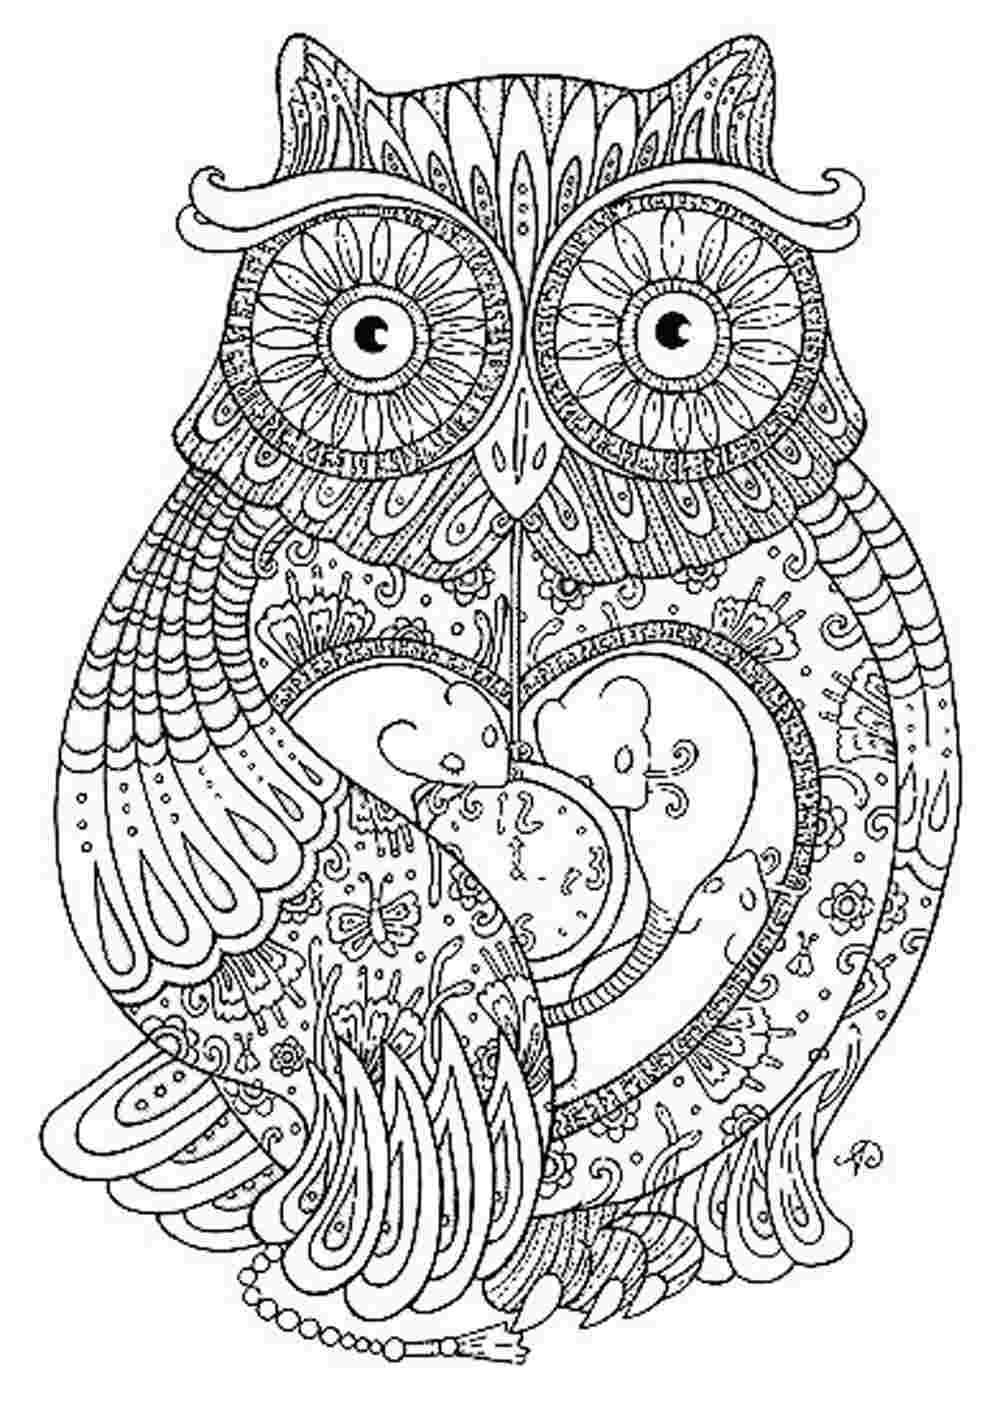 Coloring pictures free printable adult -  Full_6131_154881_craftsycoloringpagesinspiringquotes_1 Owl Coloring Pages For Adults